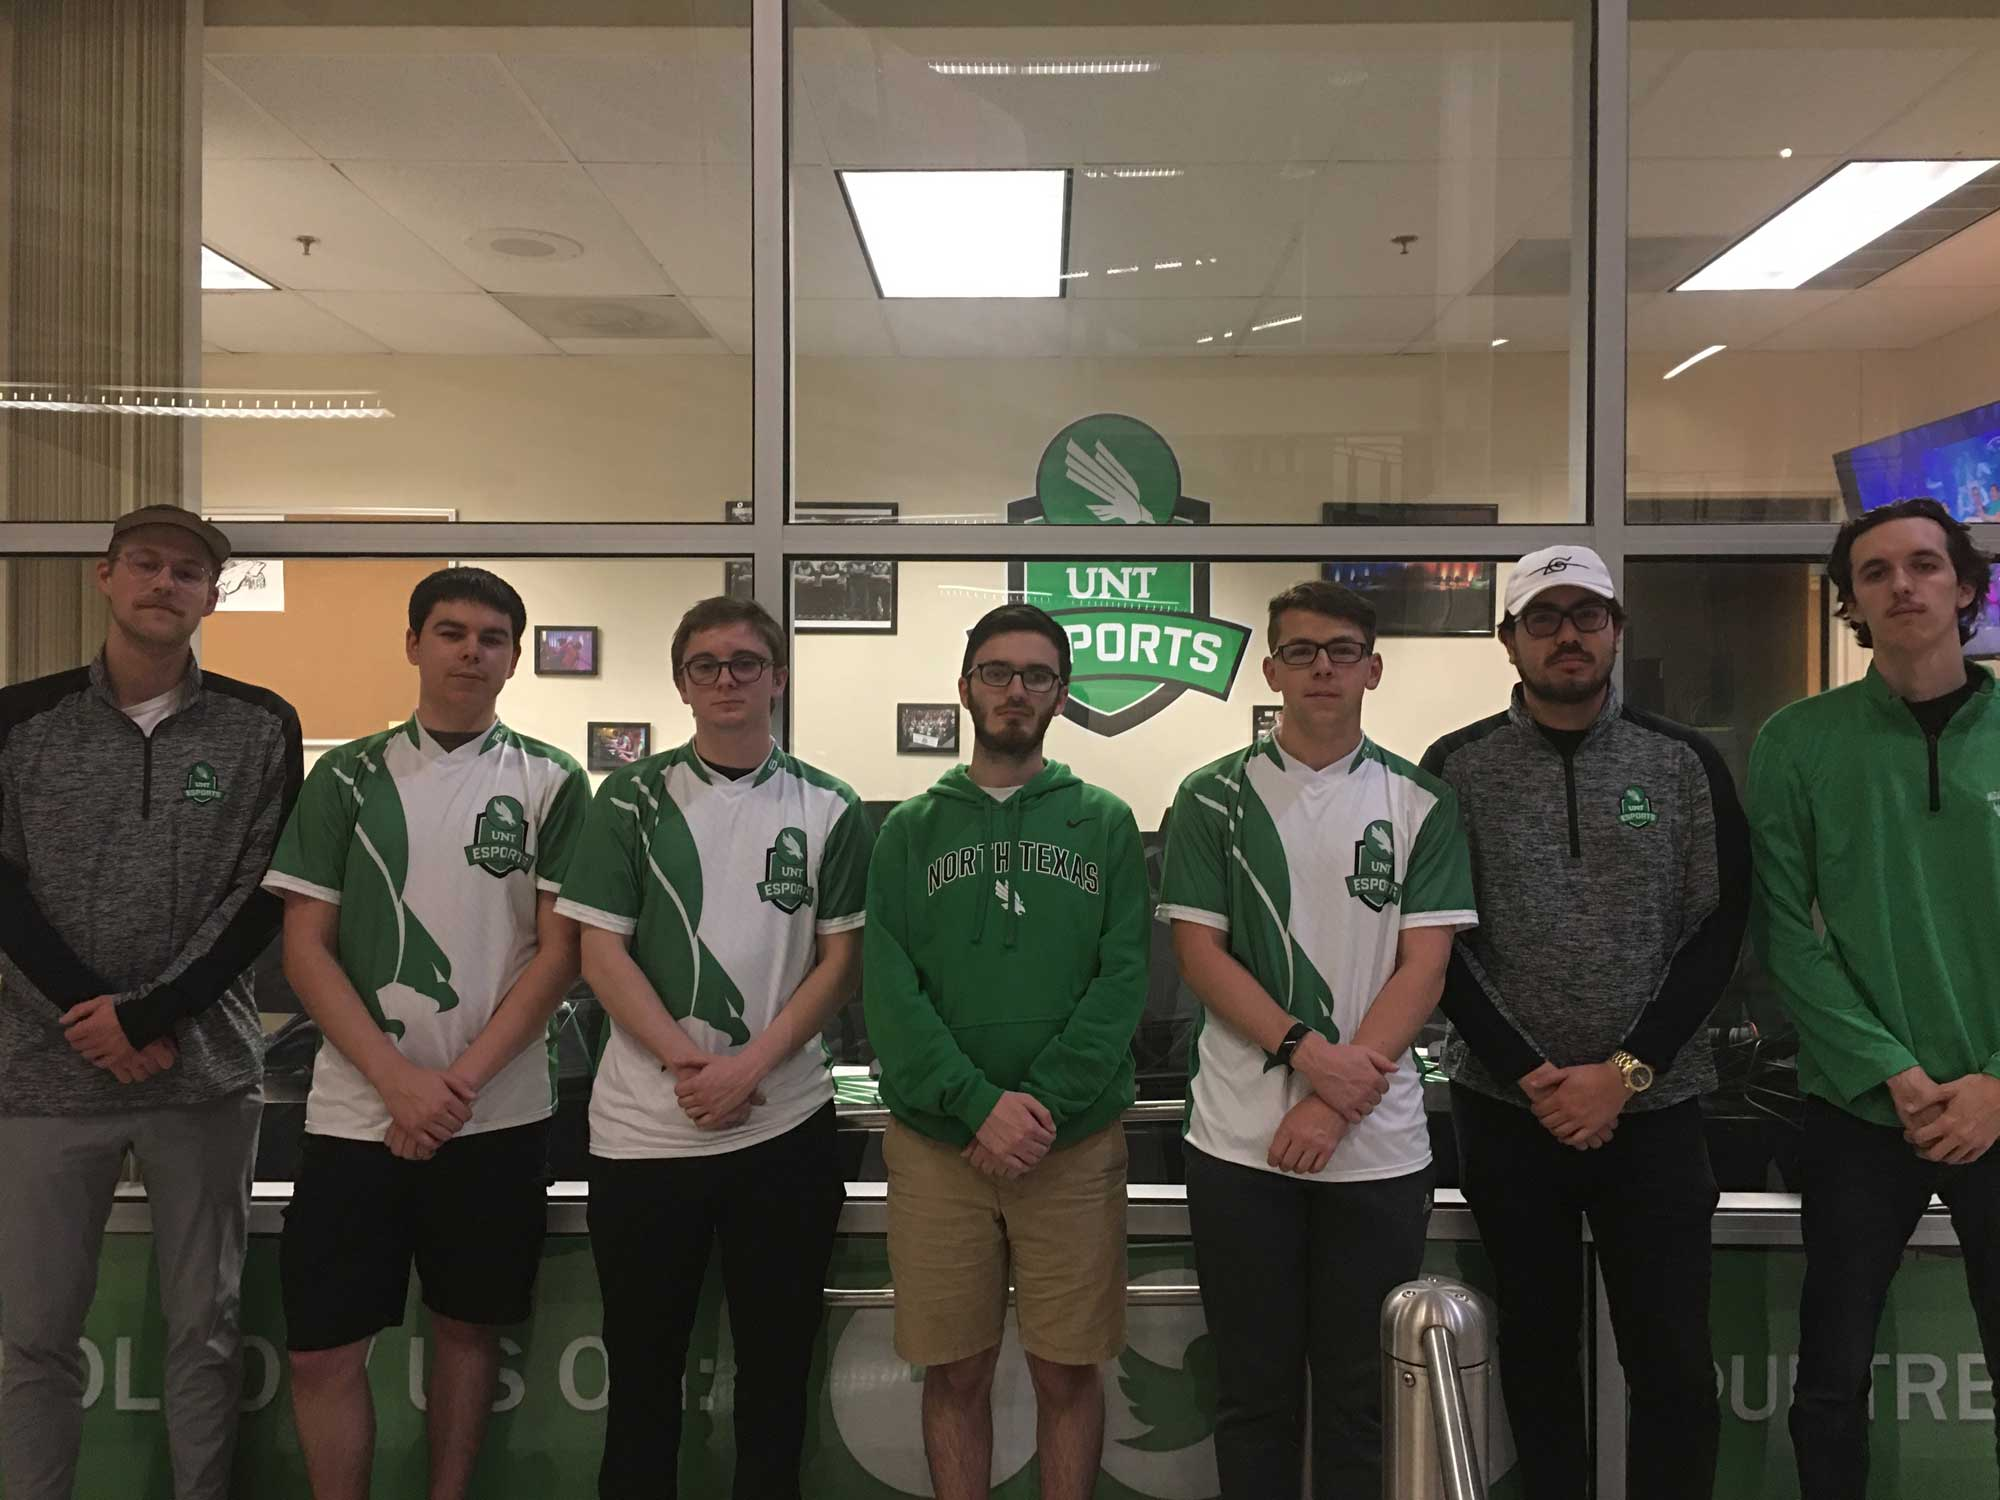 UNT Esports Rocket League team photo